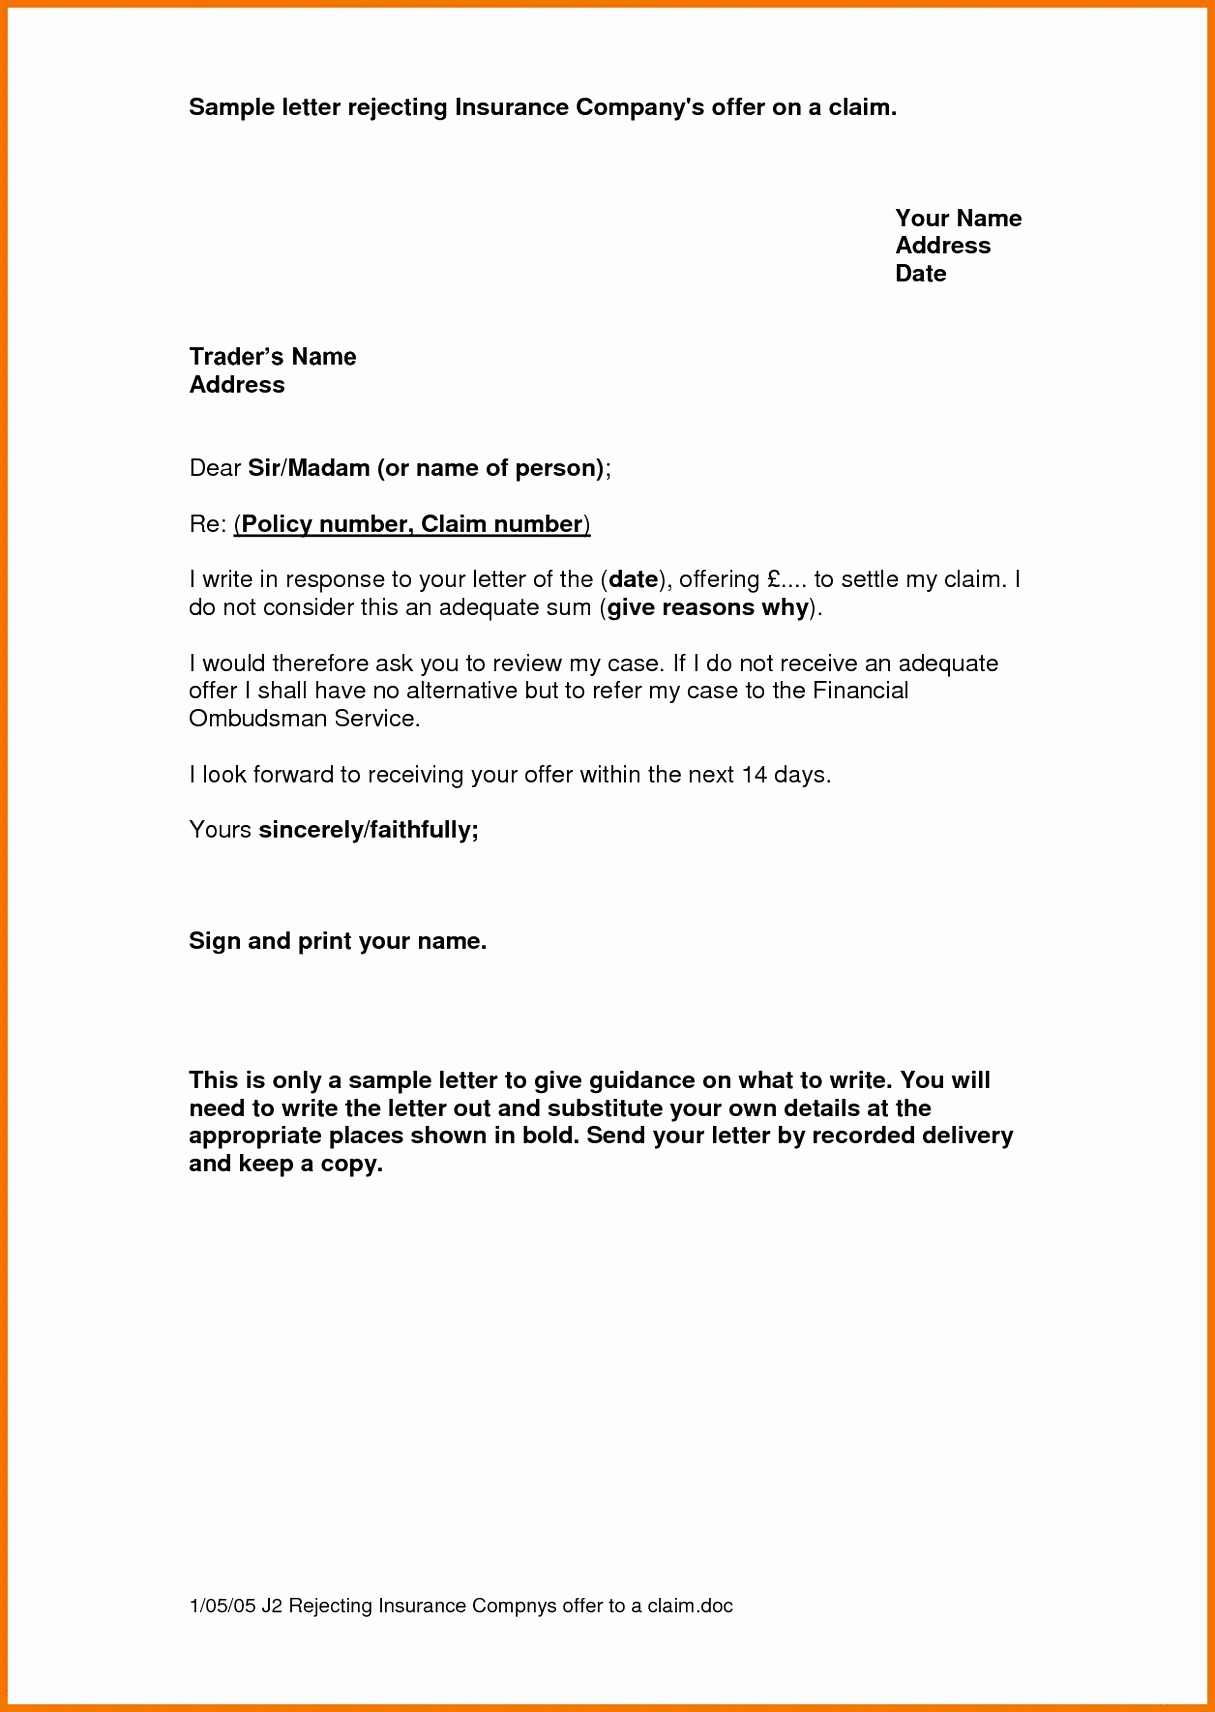 17 Insurance Renewal Letter Template Ideas - Letter Templates